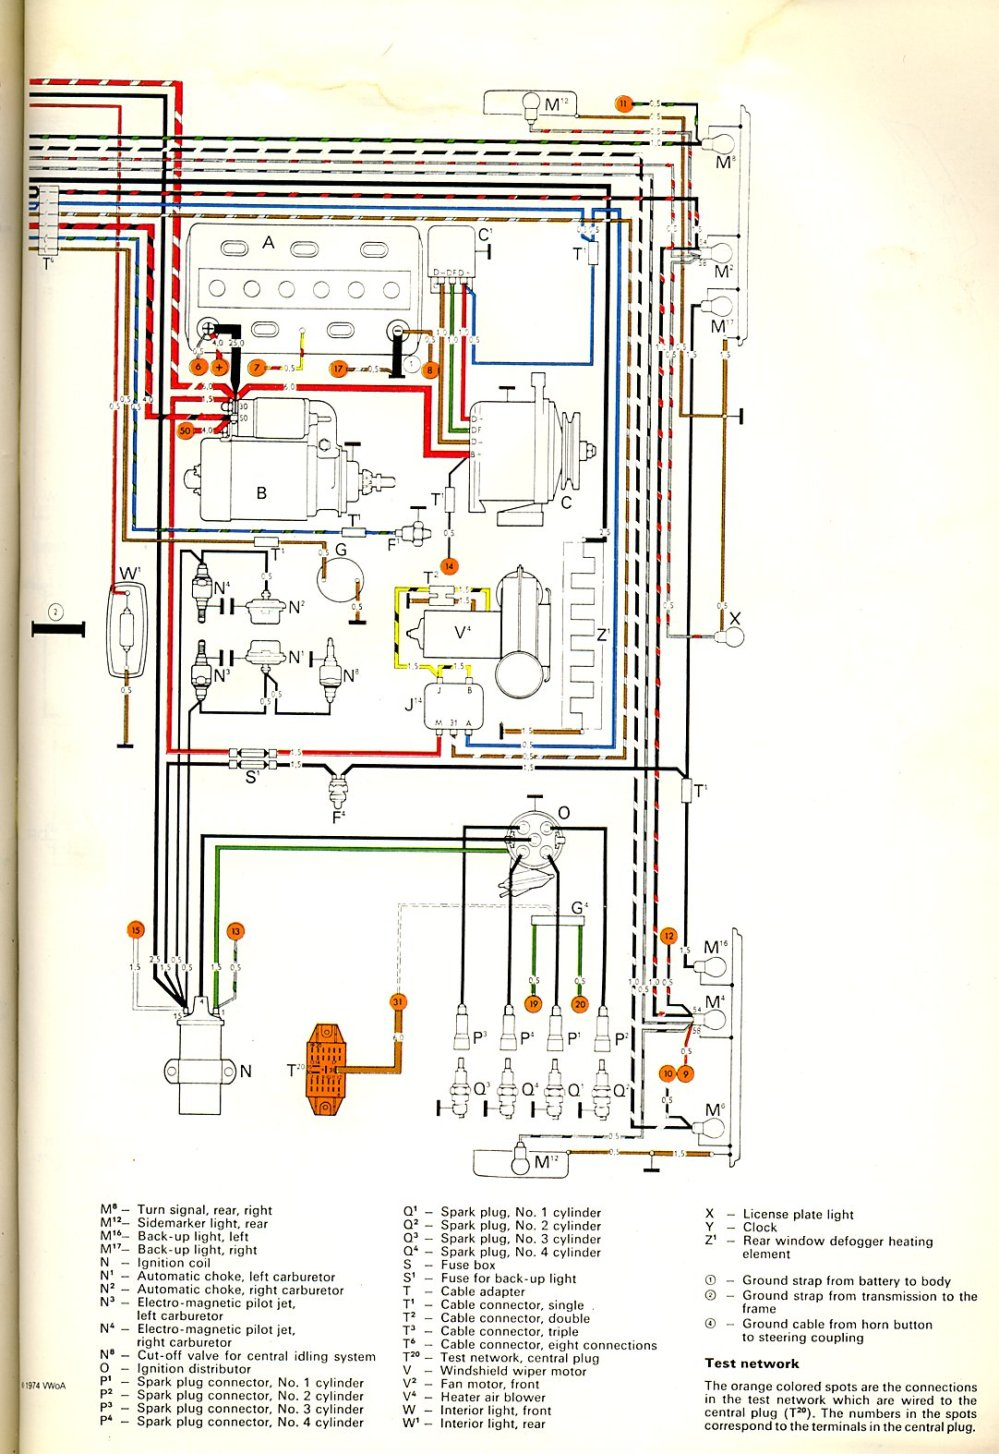 medium resolution of thesamba com type 2 wiring diagrams vw alternator diagram vw generator to alternator conversion